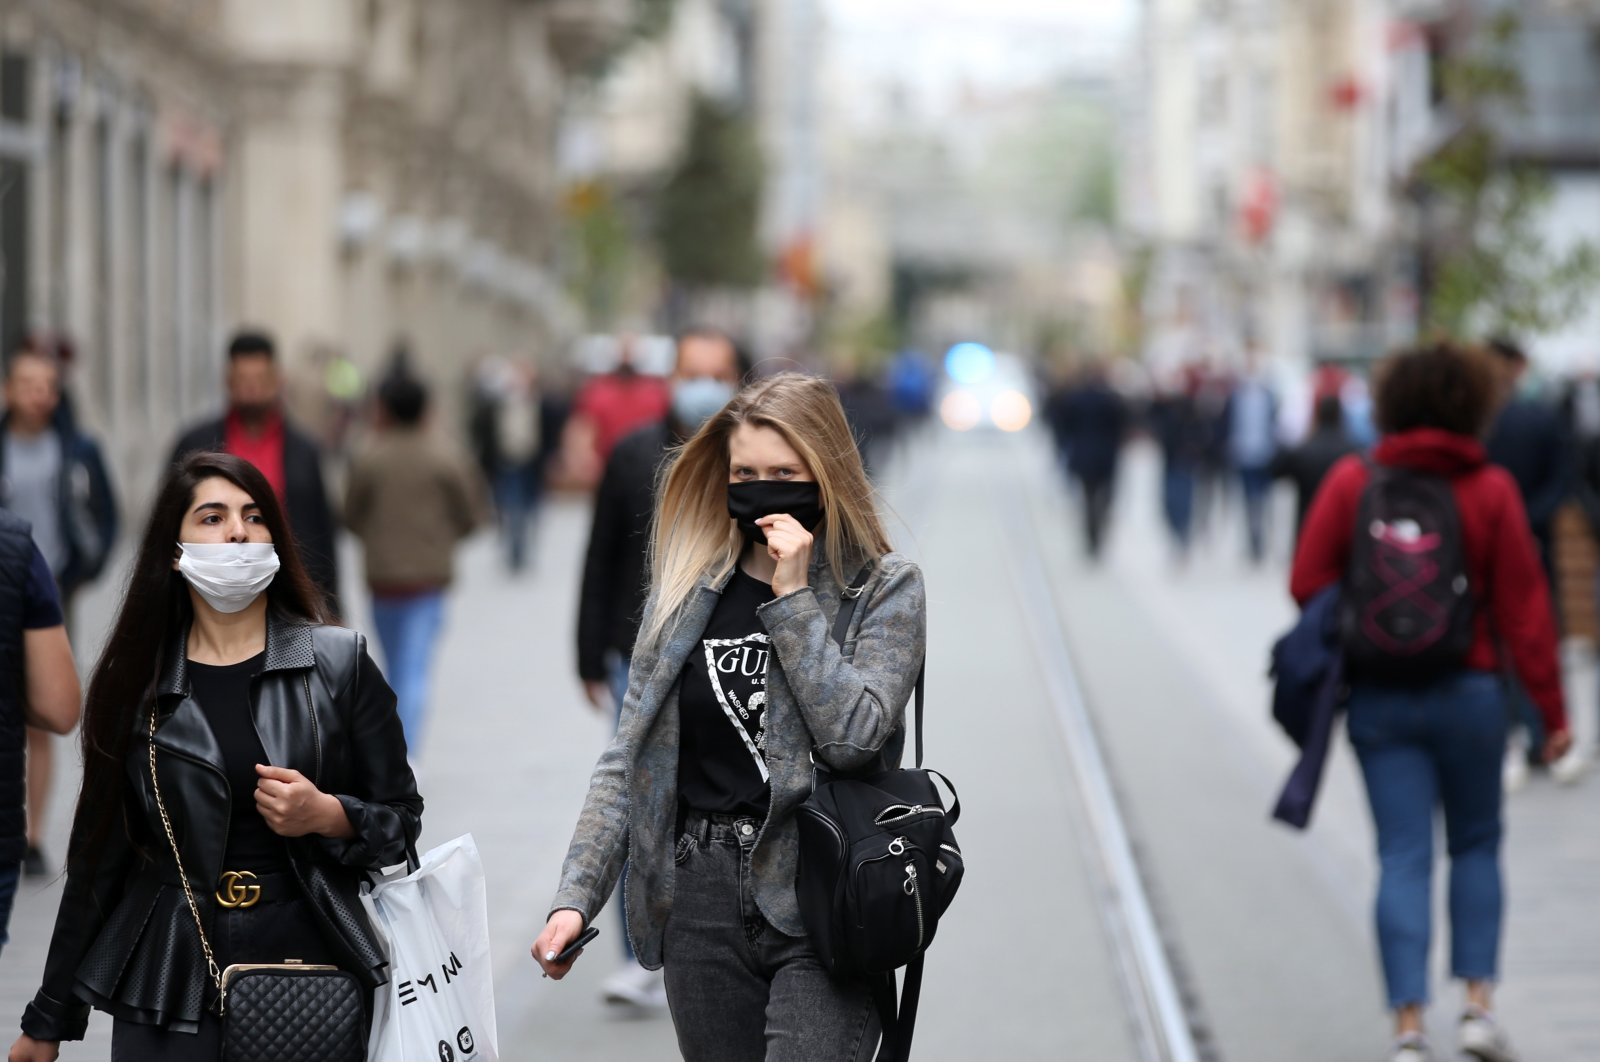 Two women walk on Istiklal Avenue wearing masks to protect against COVID-19, in Istanbul, Turkey, May 8, 2020. (AA Photo)